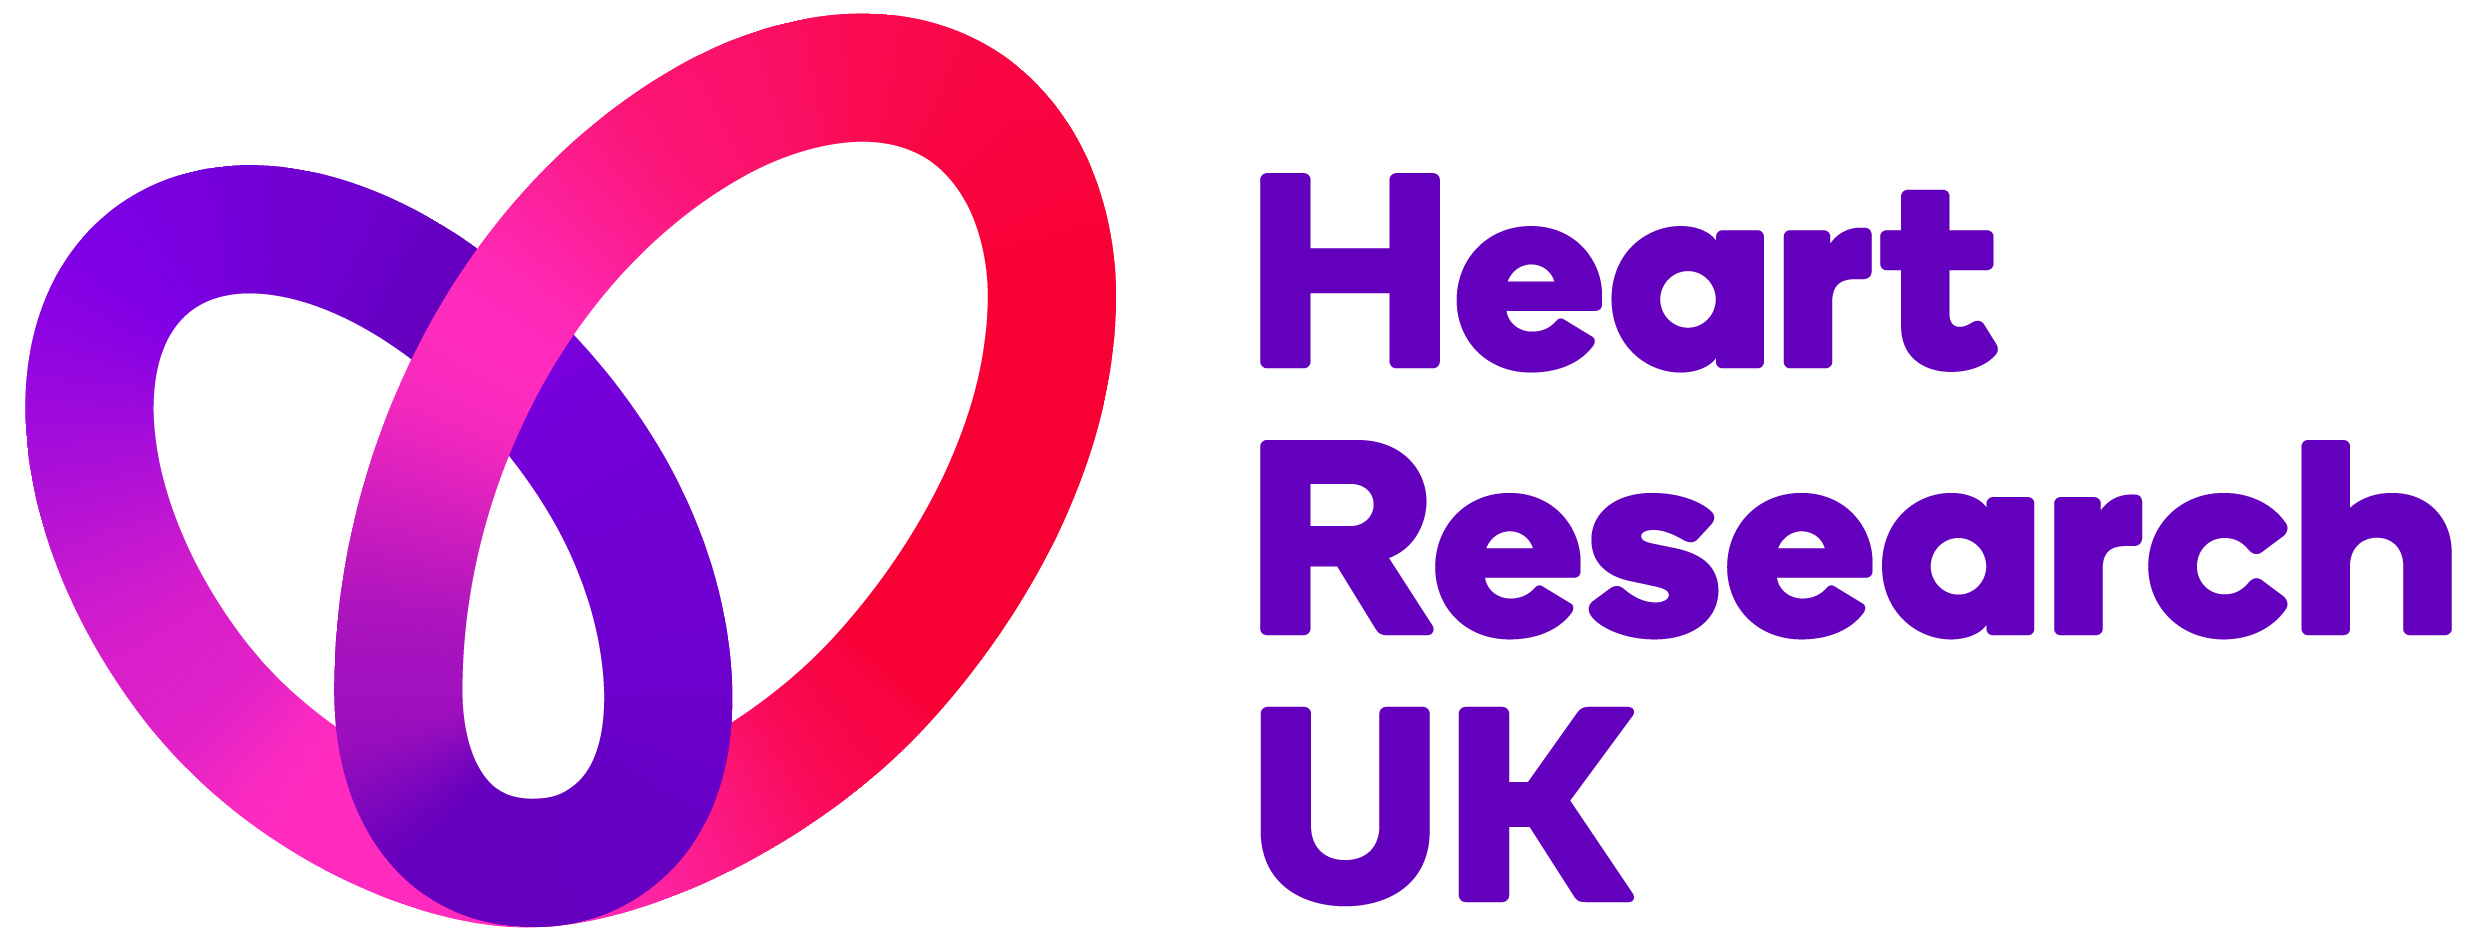 University of Leeds project to develop new treatments for heart failure awarded Heart Research UK grant